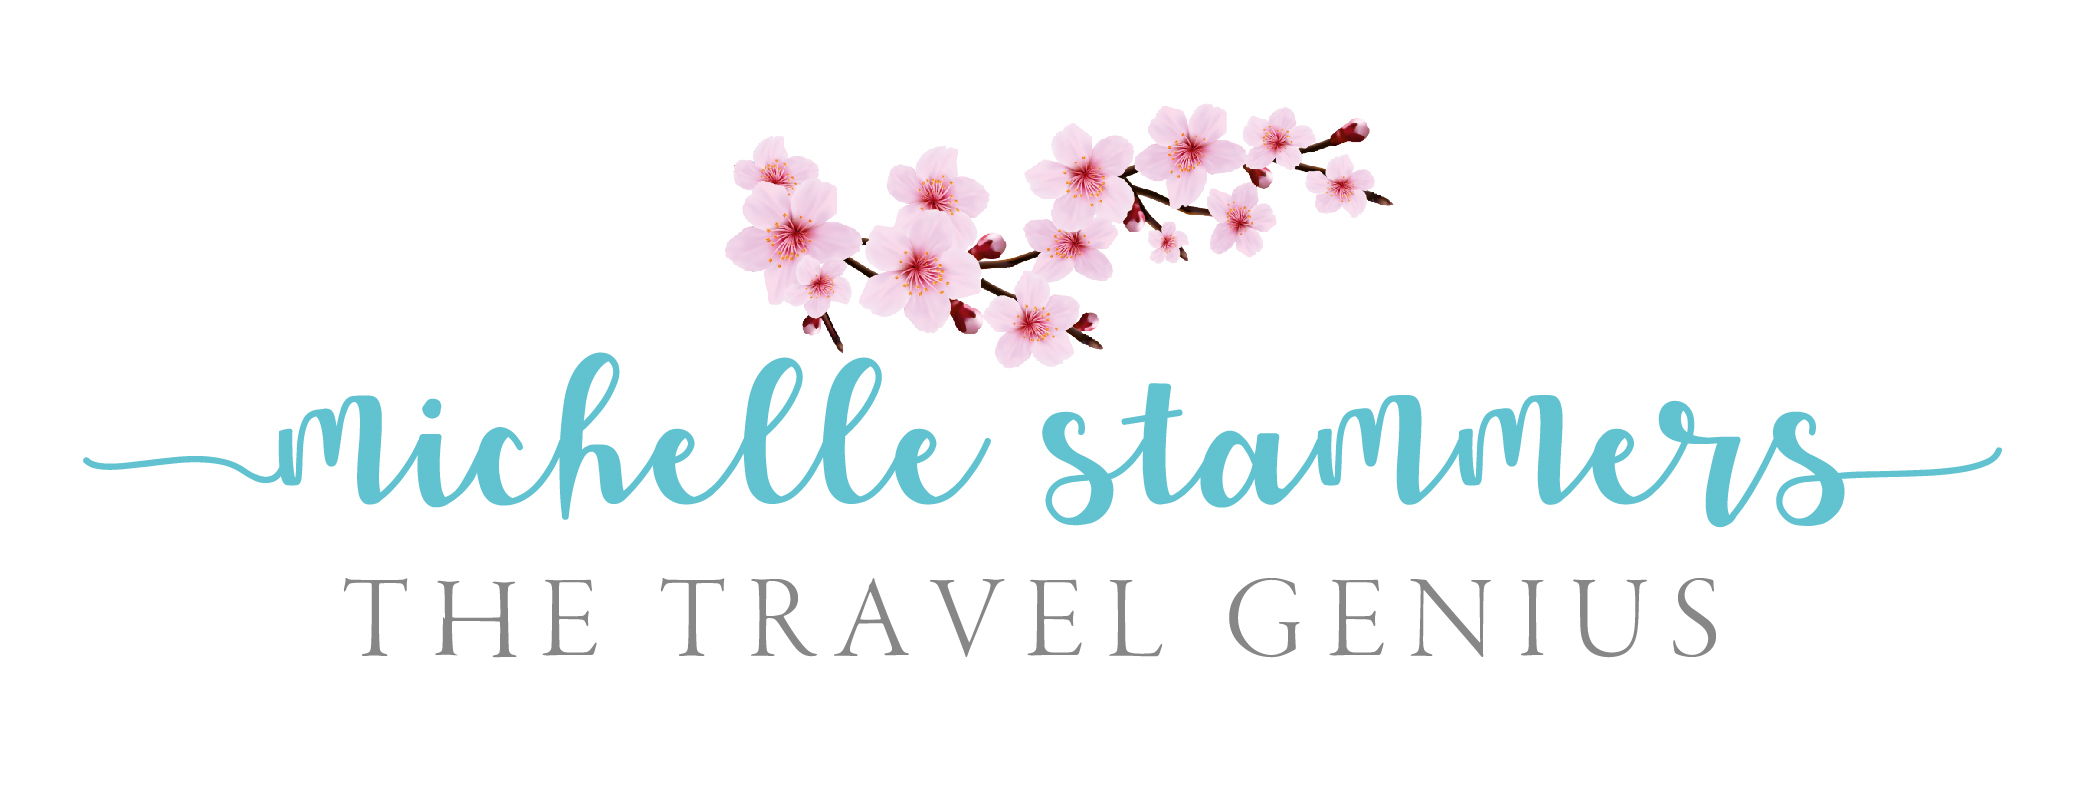 Michelle Stammers Travel